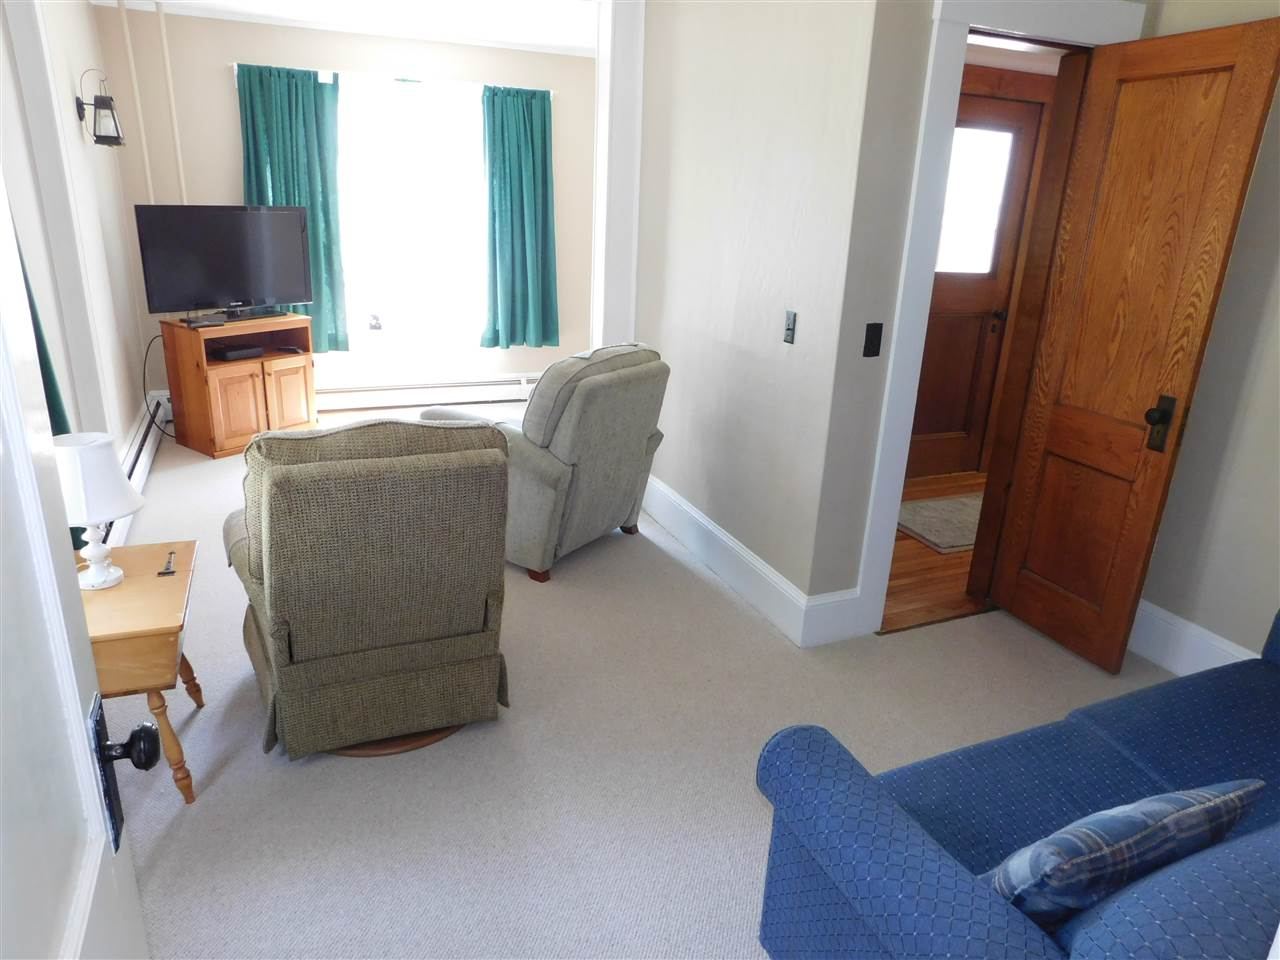 Separate, Carpeted Den, (20 x 12) Former Doctor